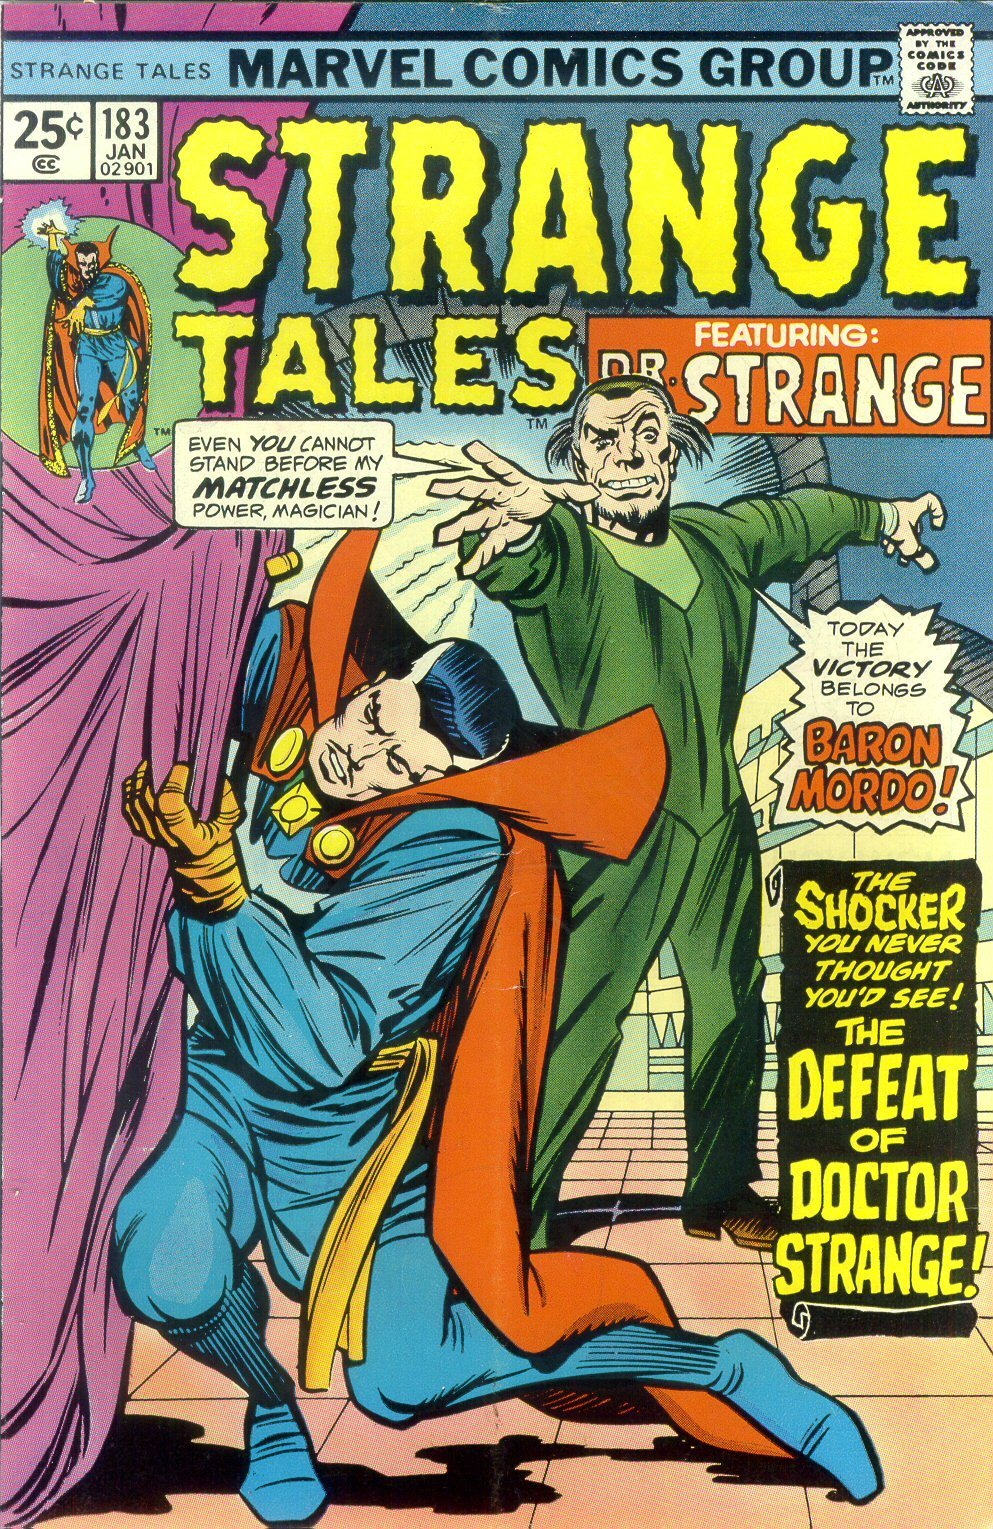 comicbookcovers:  Strange Tales #183, Janury 1976, cover by Jack Kirby and Chic Stone  One I still own.